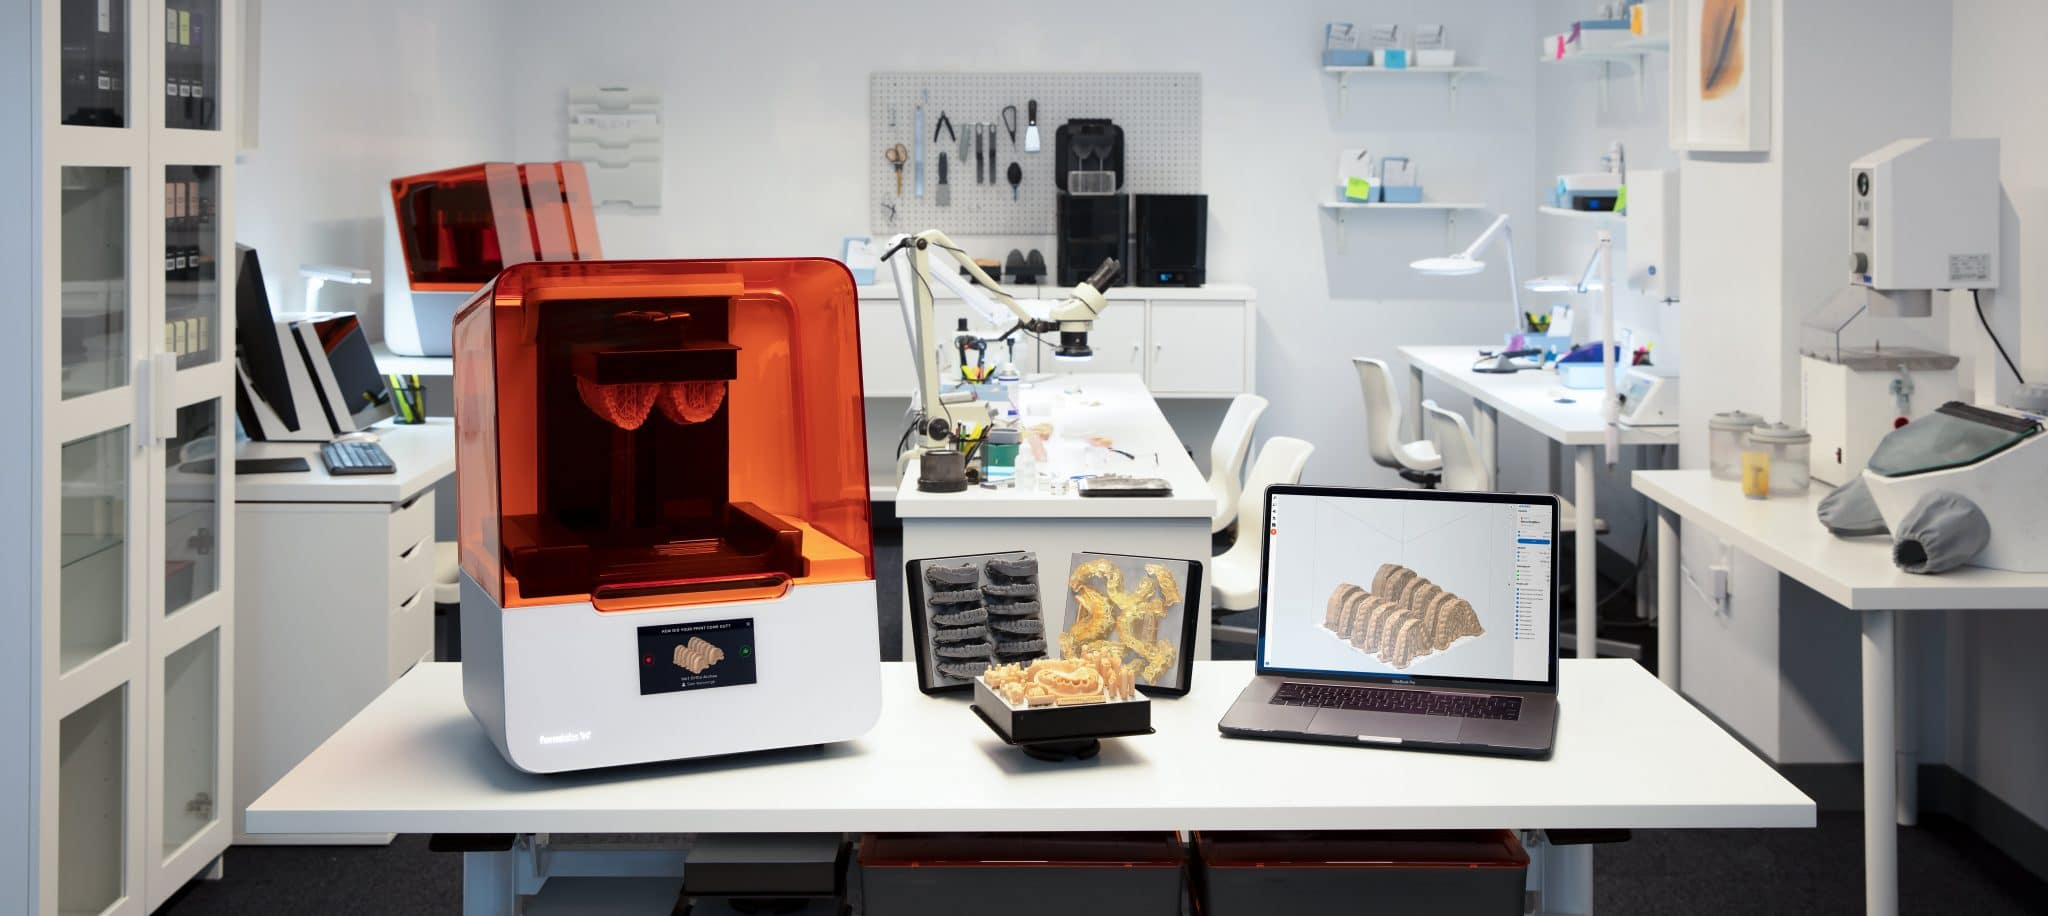 Formlabs Dental and Spectra acquisition